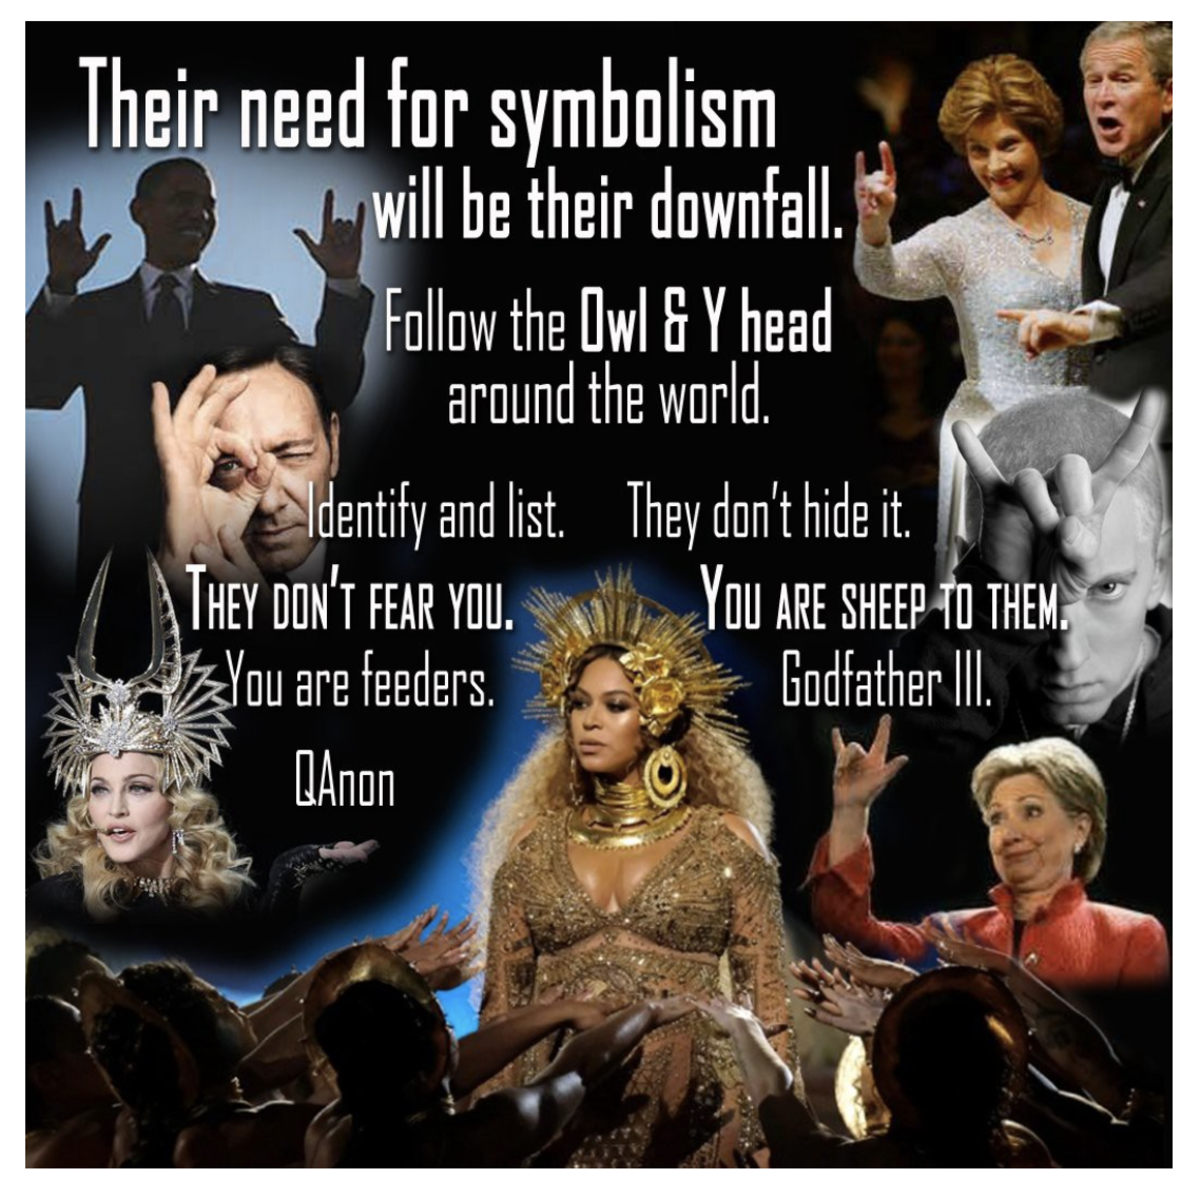 (Beyoncé is rumored in previous conspiracy theories to be the head of the Illuminati.)